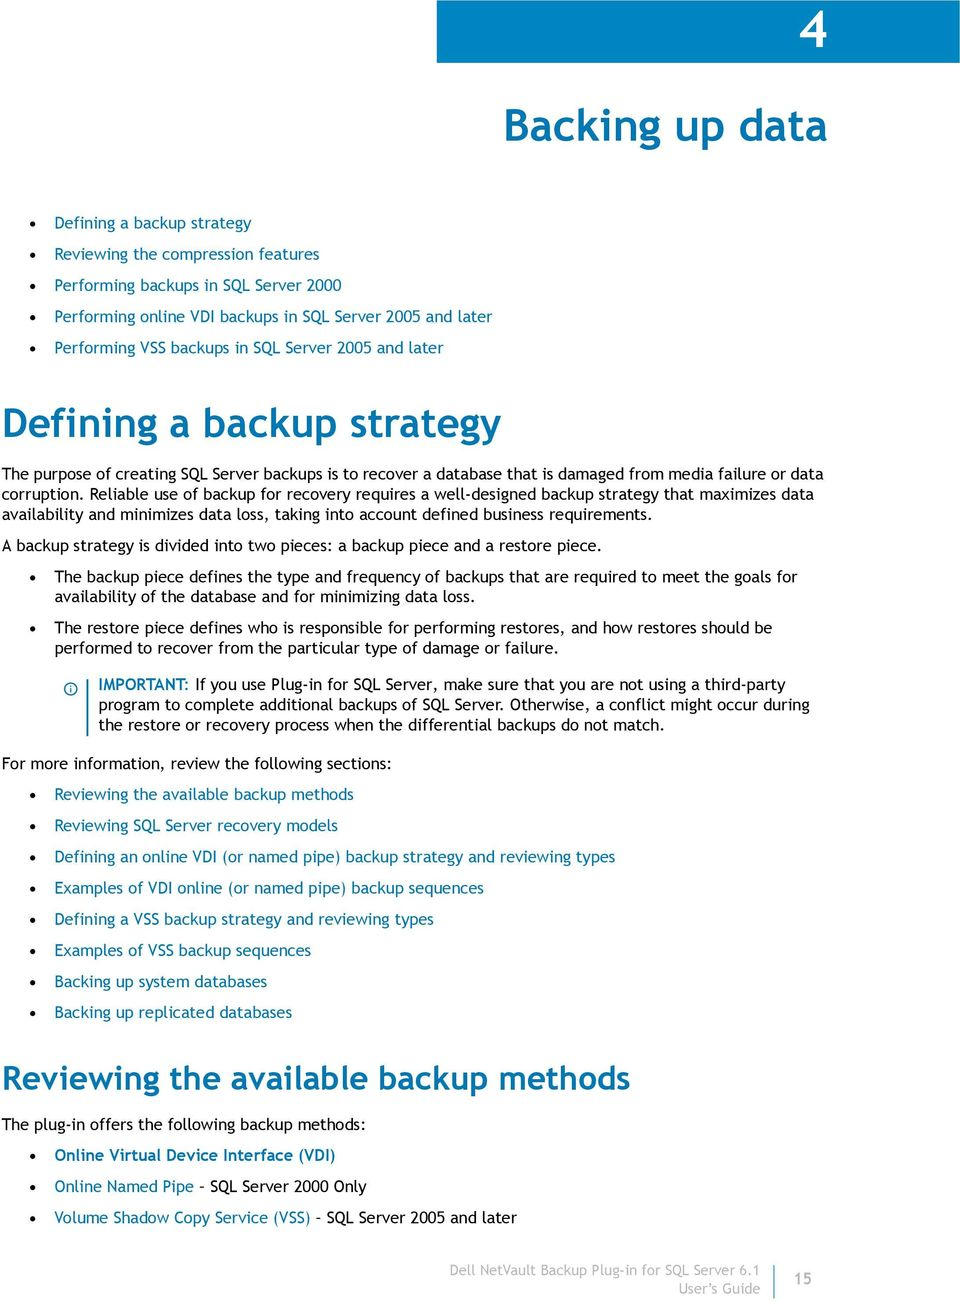 Reliable use of backup for recovery requires a well-designed backup strategy that maximizes data availability and minimizes data loss, taking into account defined business requirements.